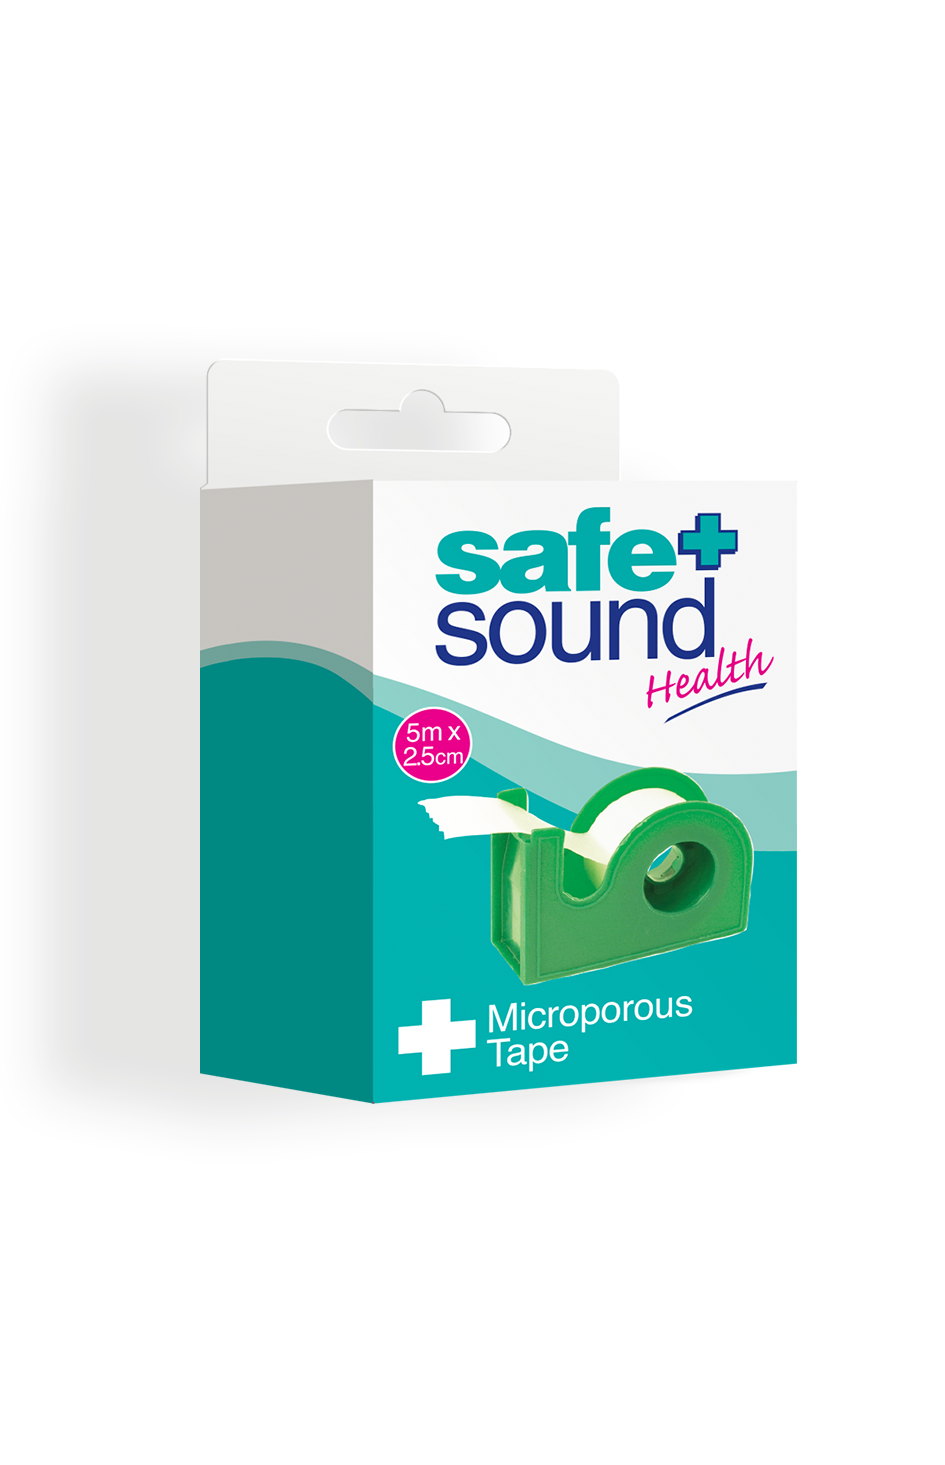 Safe and Sound Health Microporous Tape